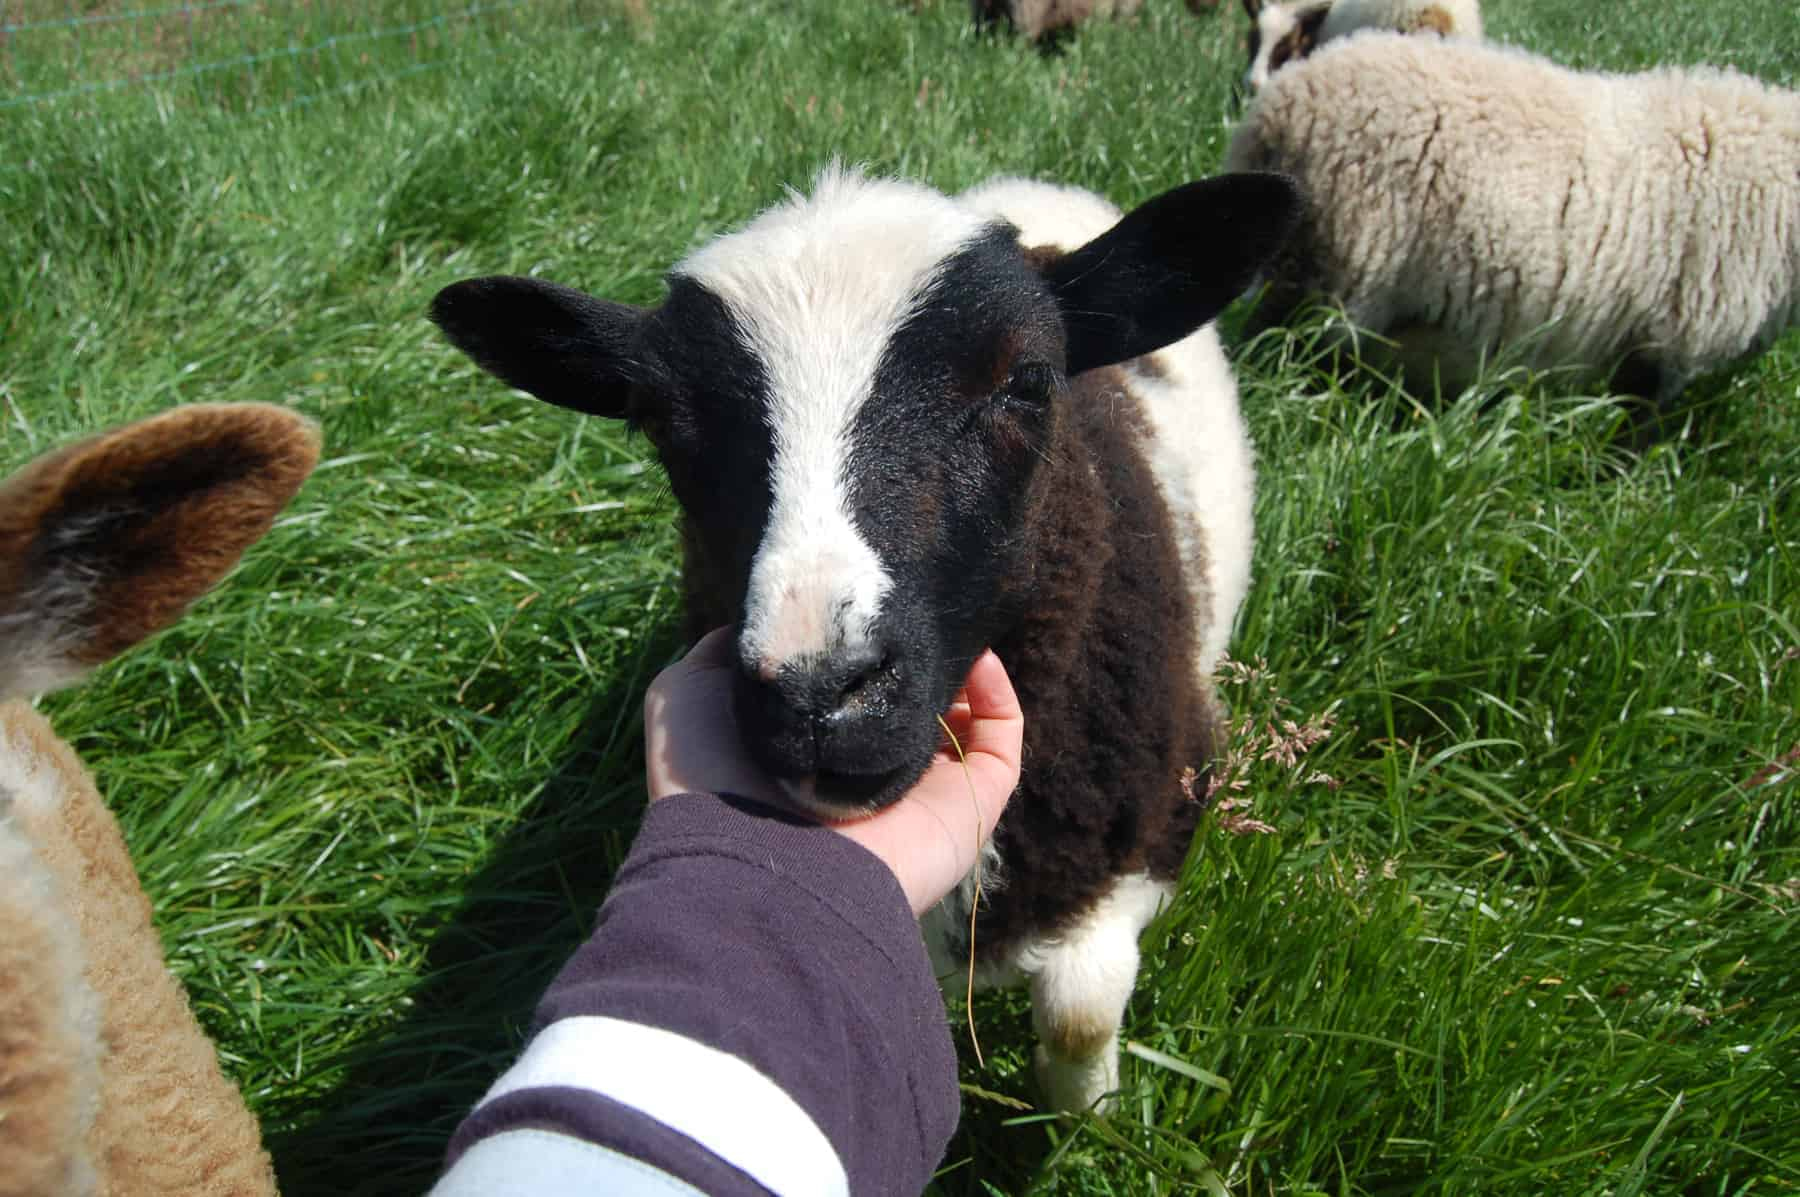 patchwork sheep phlox shearling black white soay shetland jacob cross sheep 3